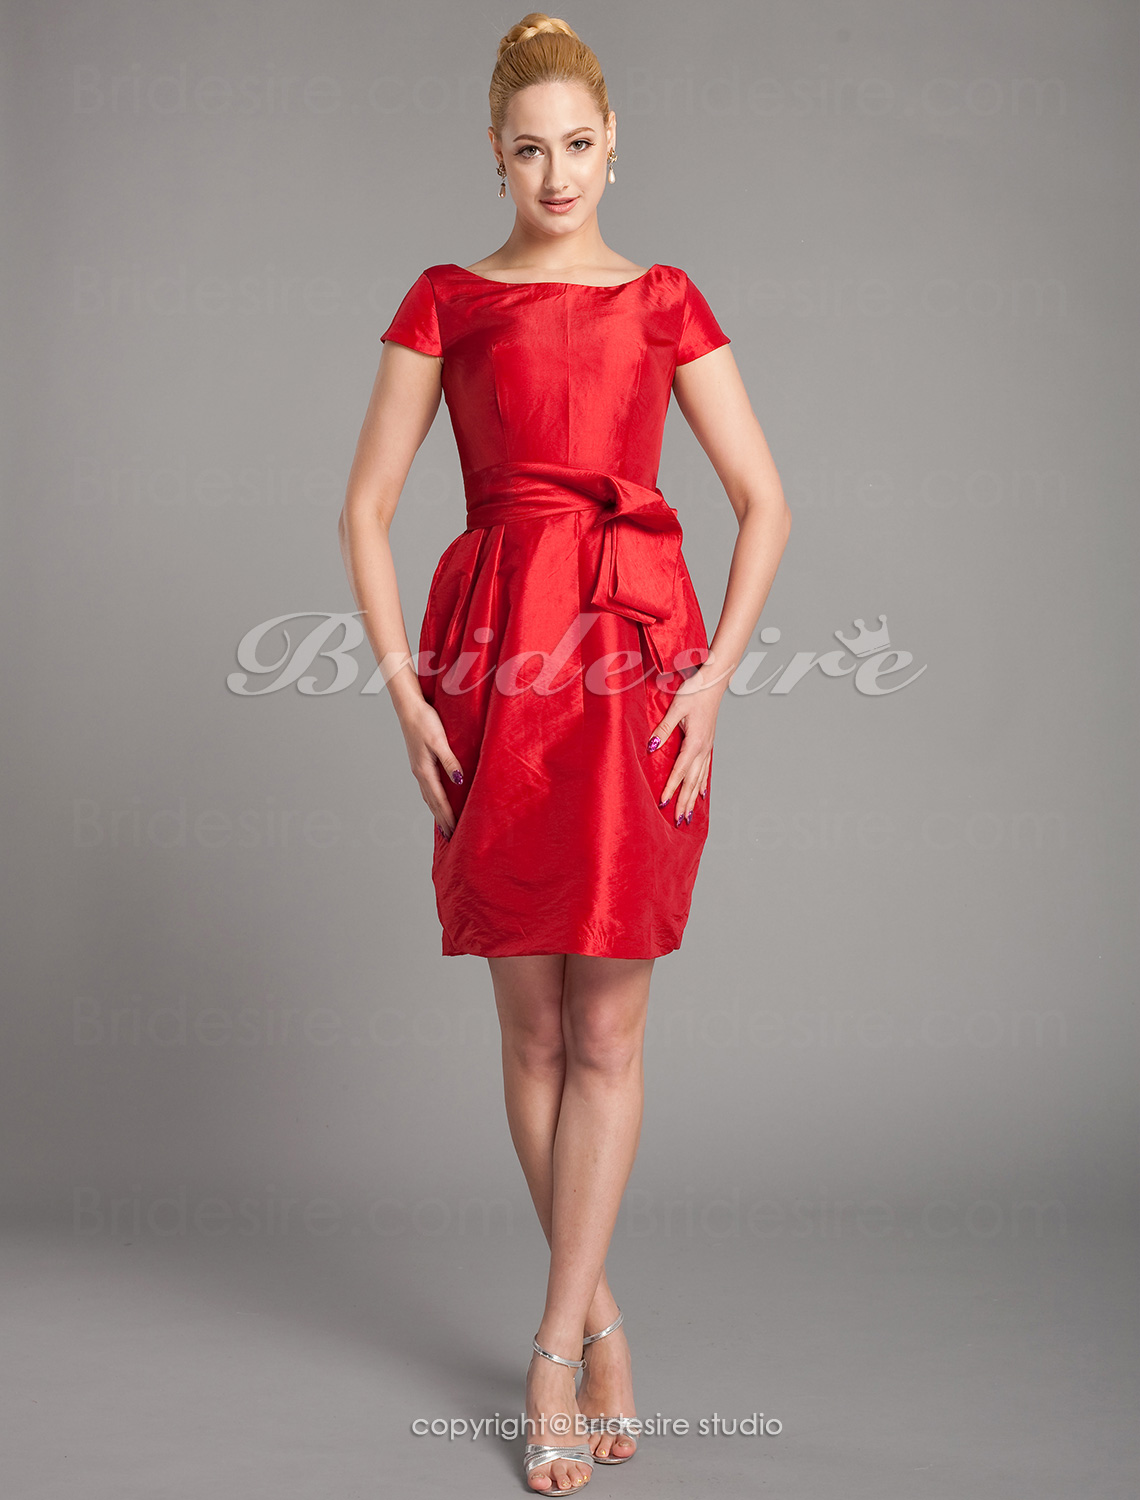 Sheath/Column Taffeta Knee-length Bateau Mother of the Bride Dress